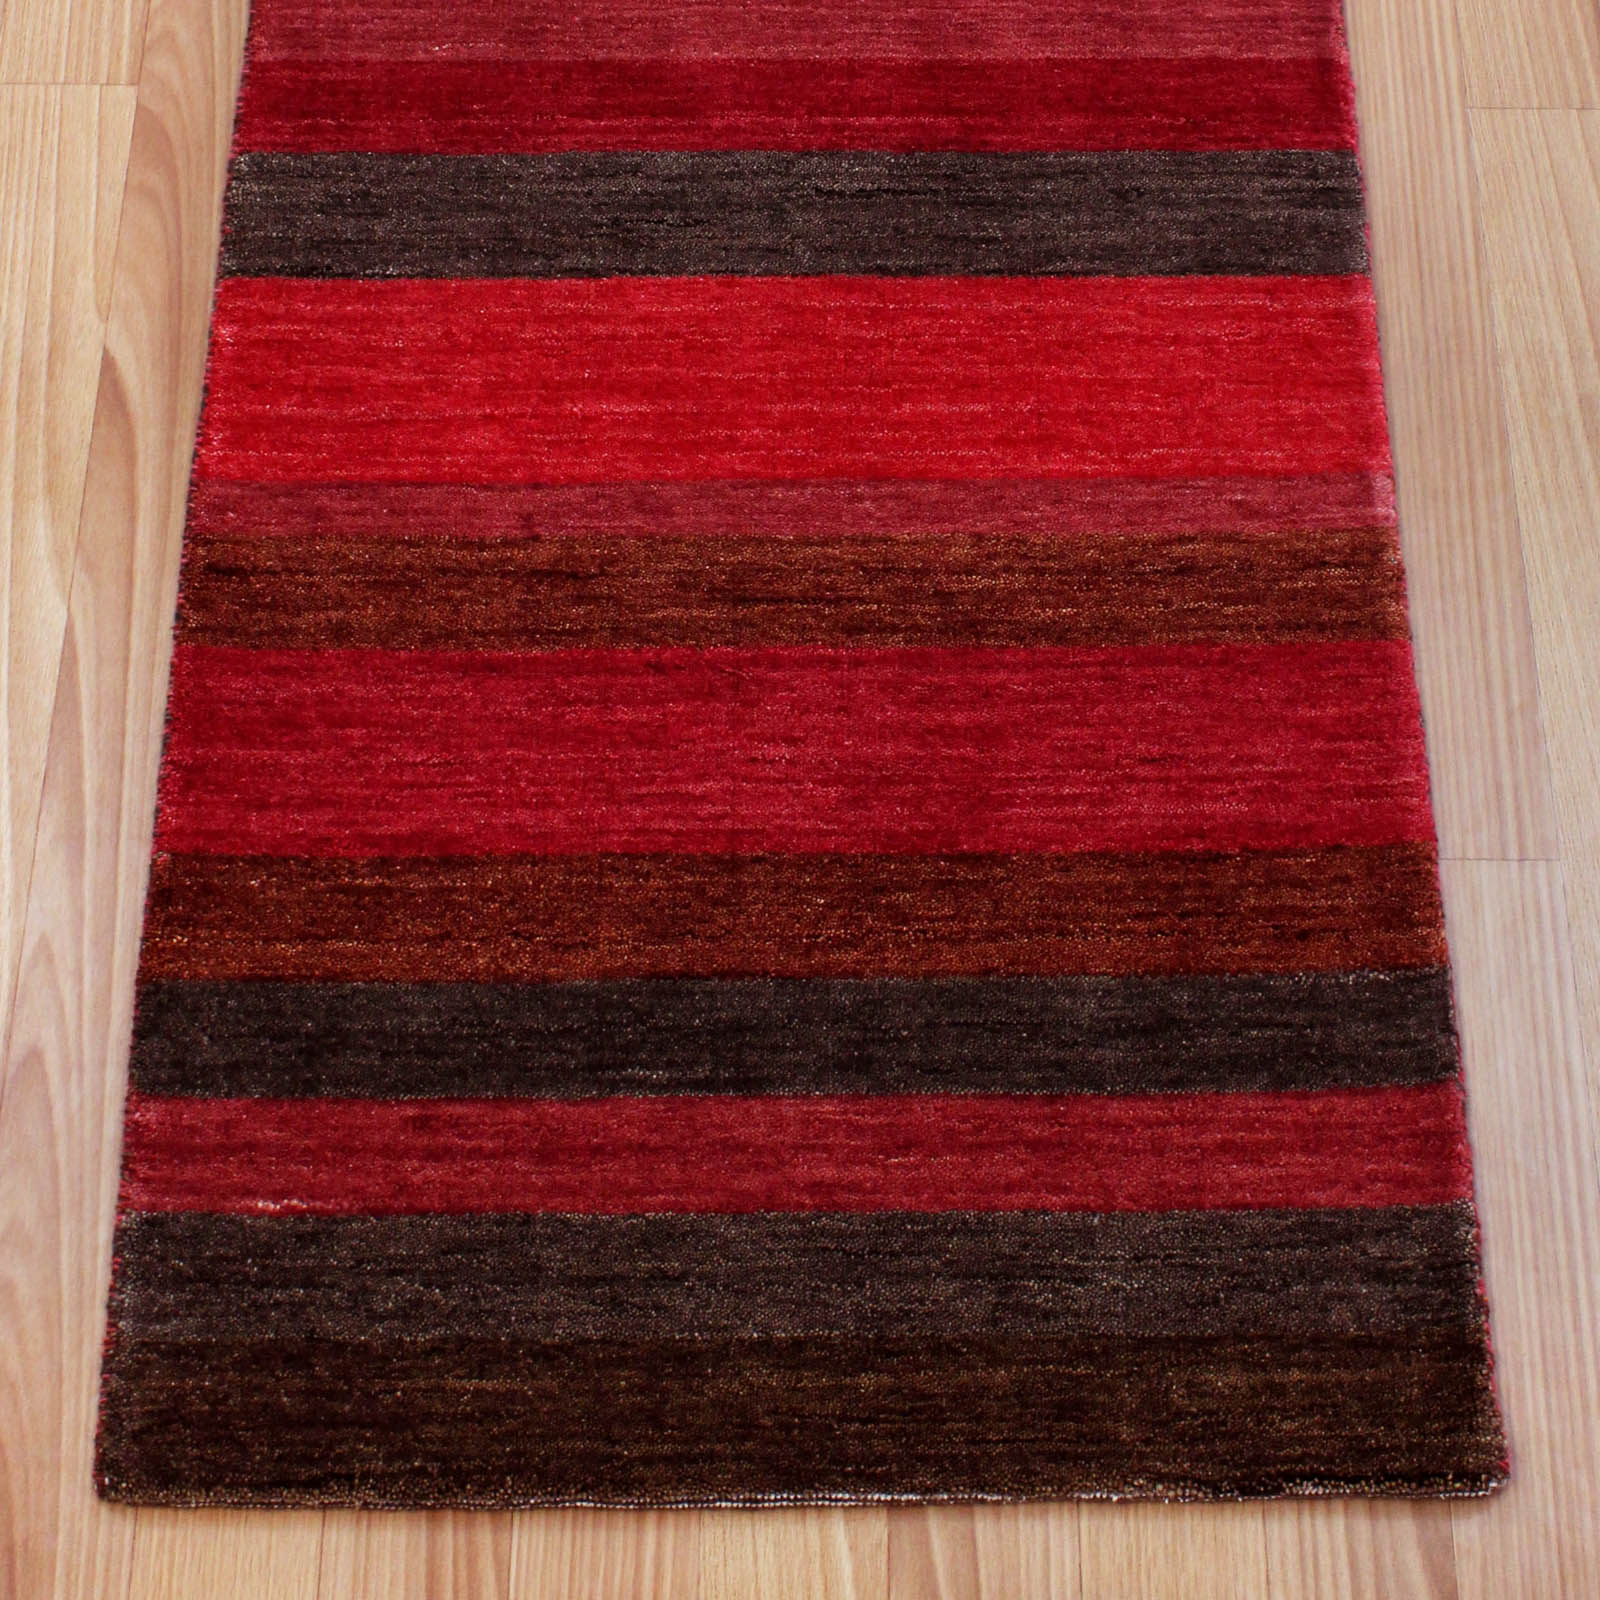 Winslow Hallway Runners in Stripe Red